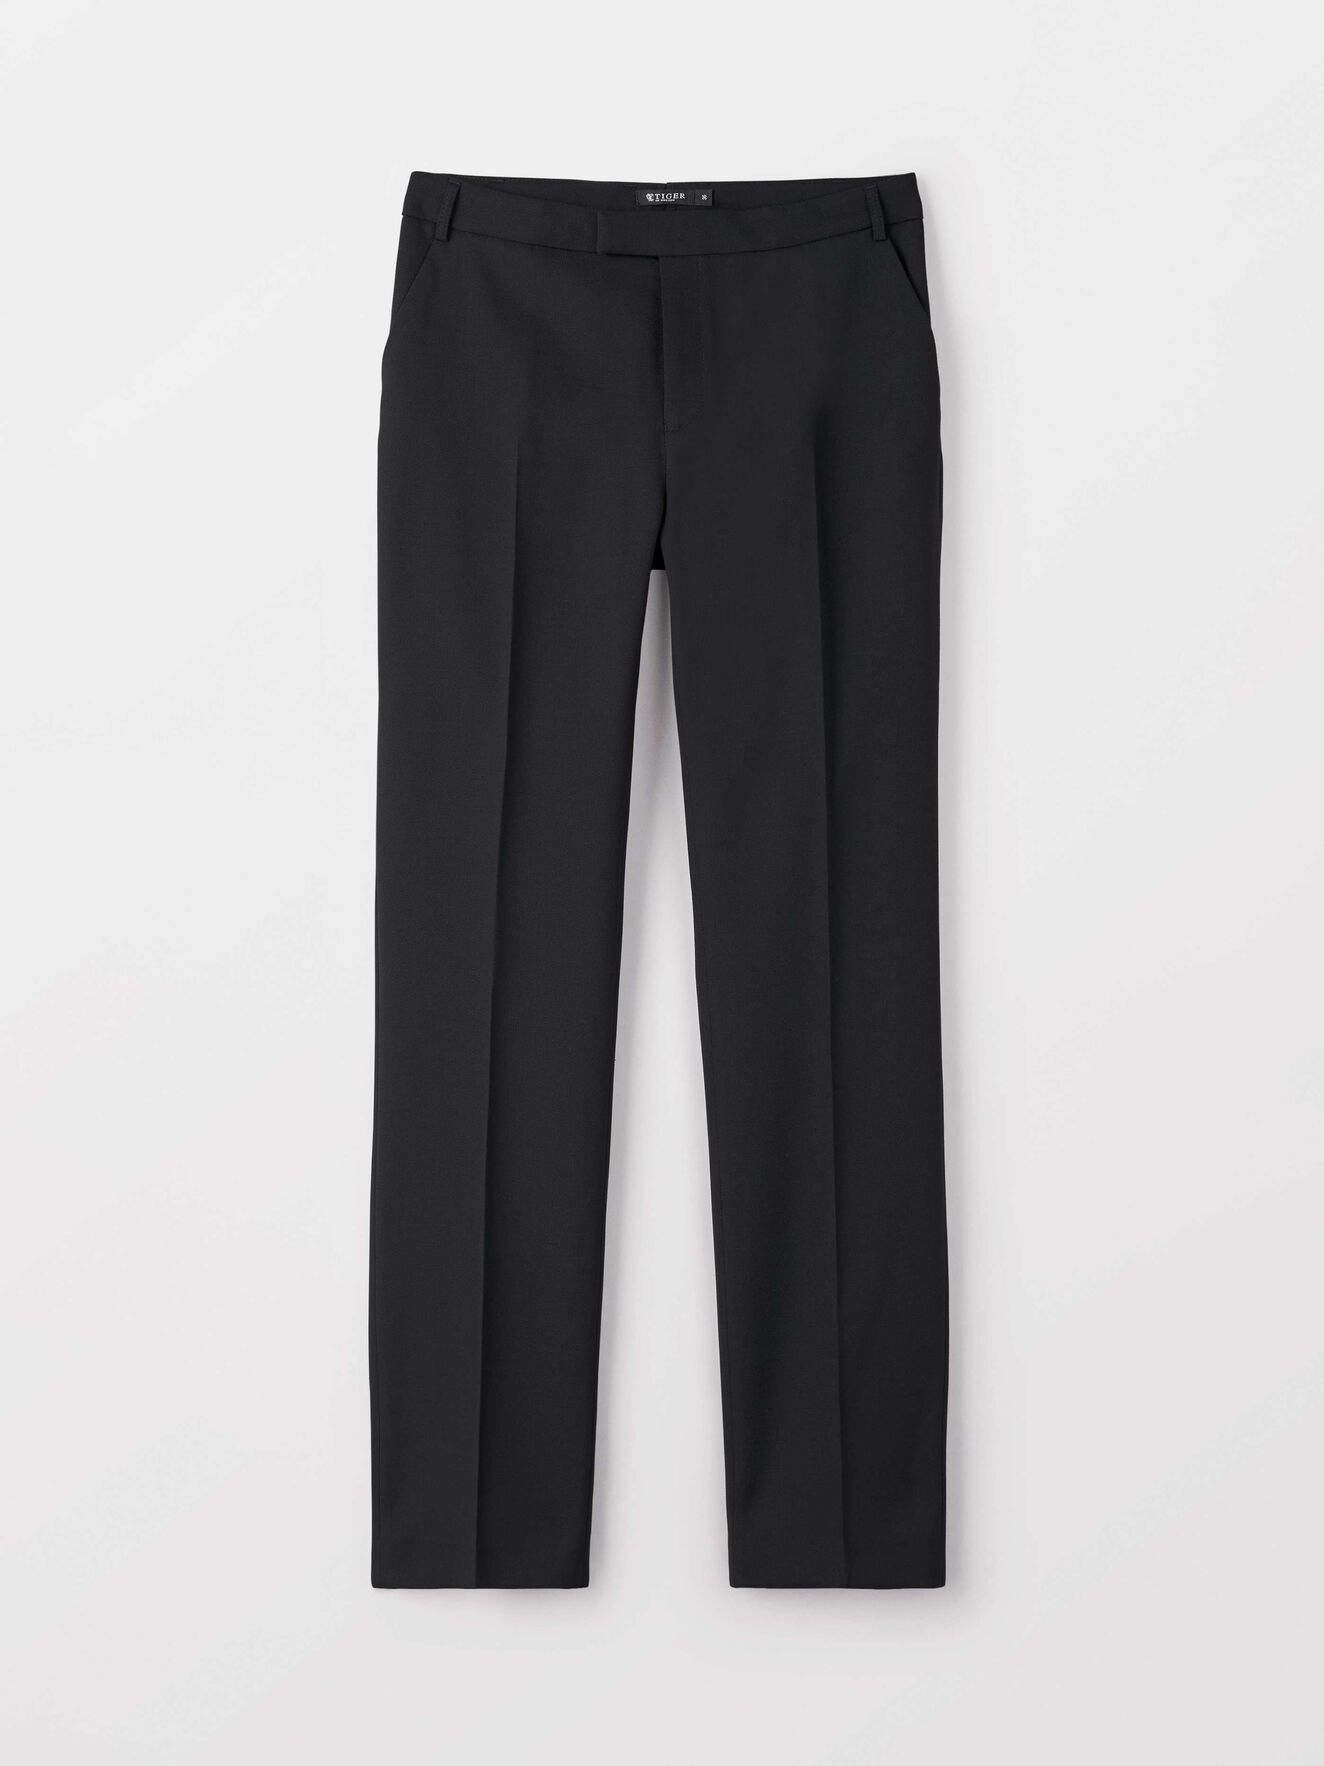 Yulia Trousers in Night Black from Tiger of Sweden